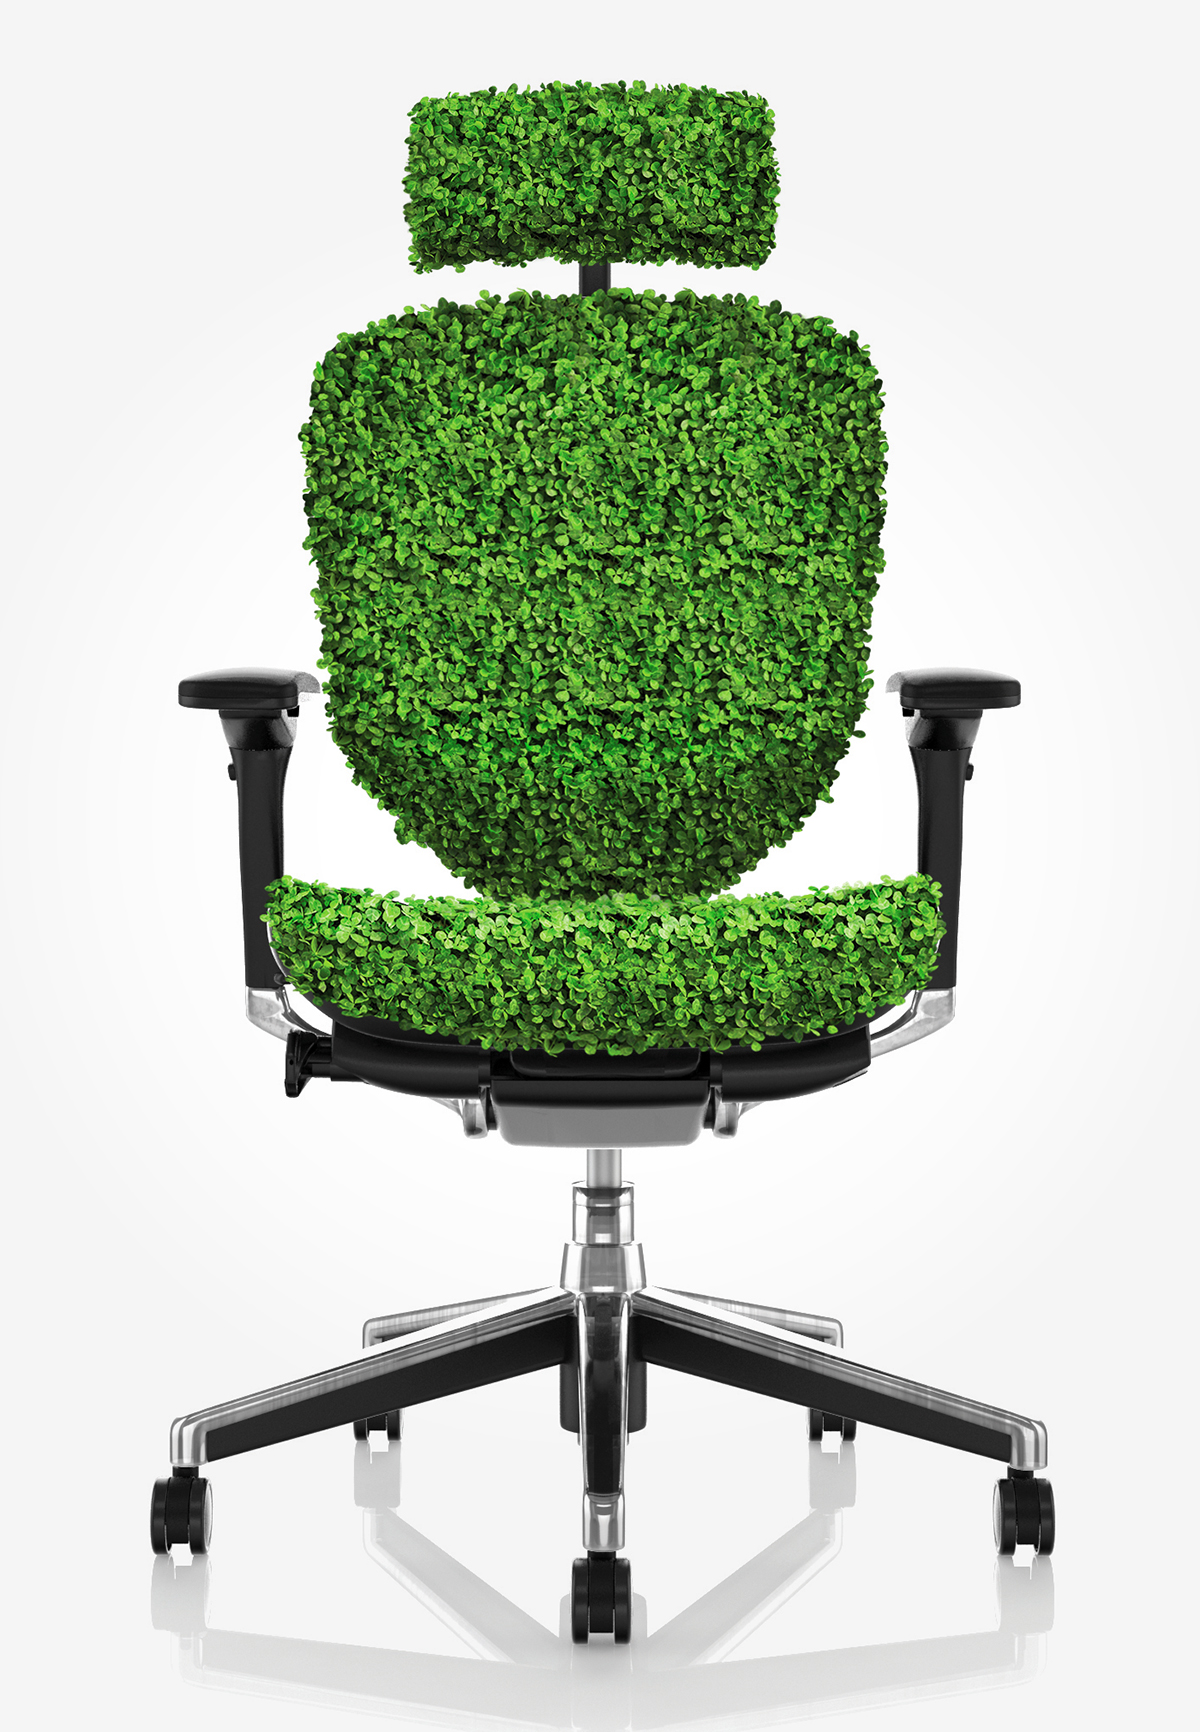 globe office chairs. COMFORT \u2013 GREEN EVERY DAY Globe Office Chairs